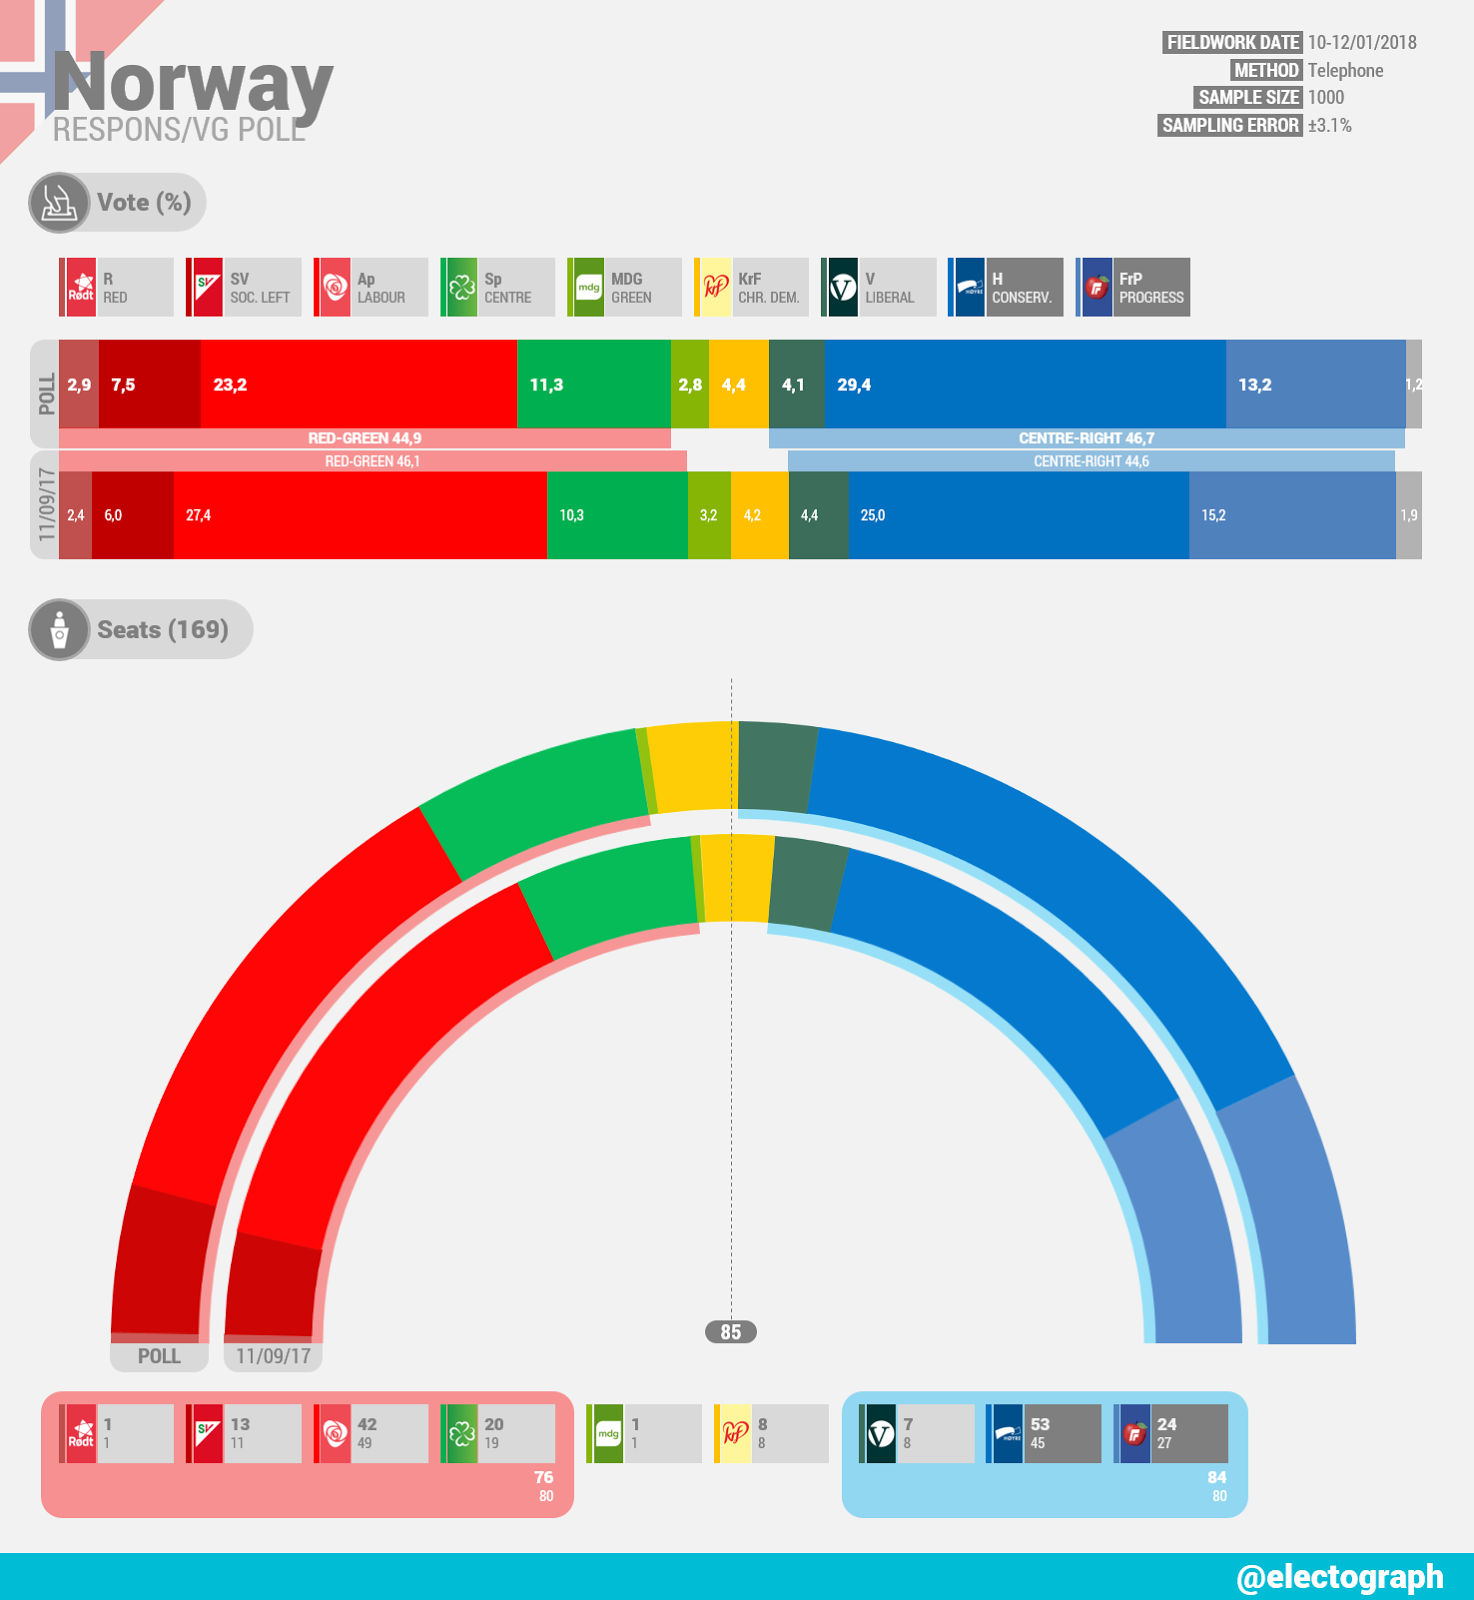 NORWAY Respons poll for VG January 2018